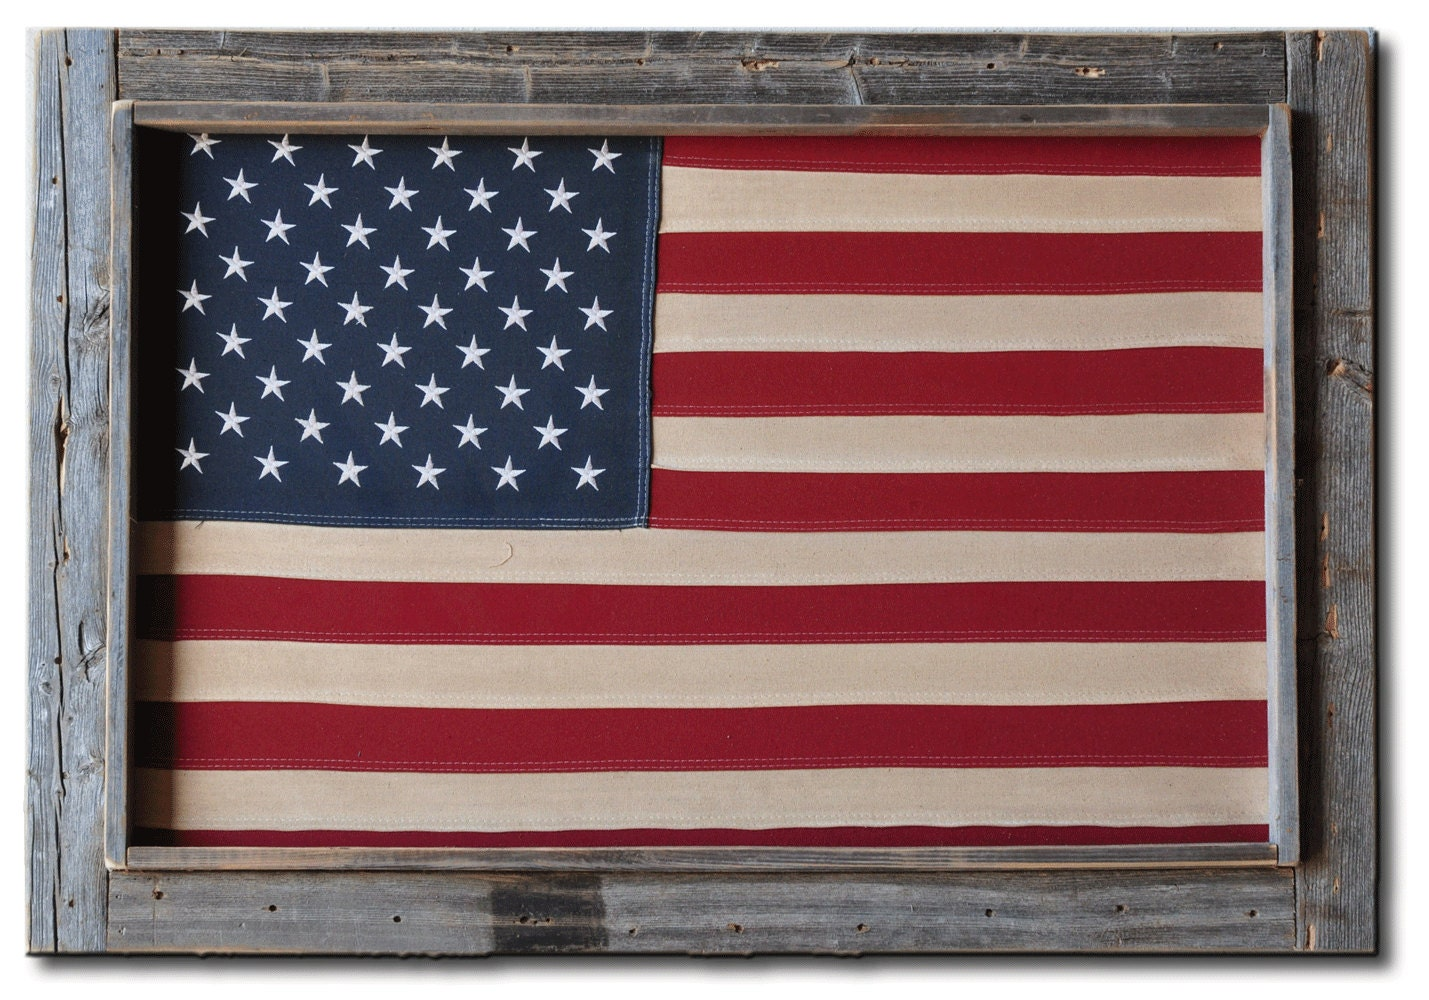 Barnwood Rustic Framed Cotton Tea Stained American Flag